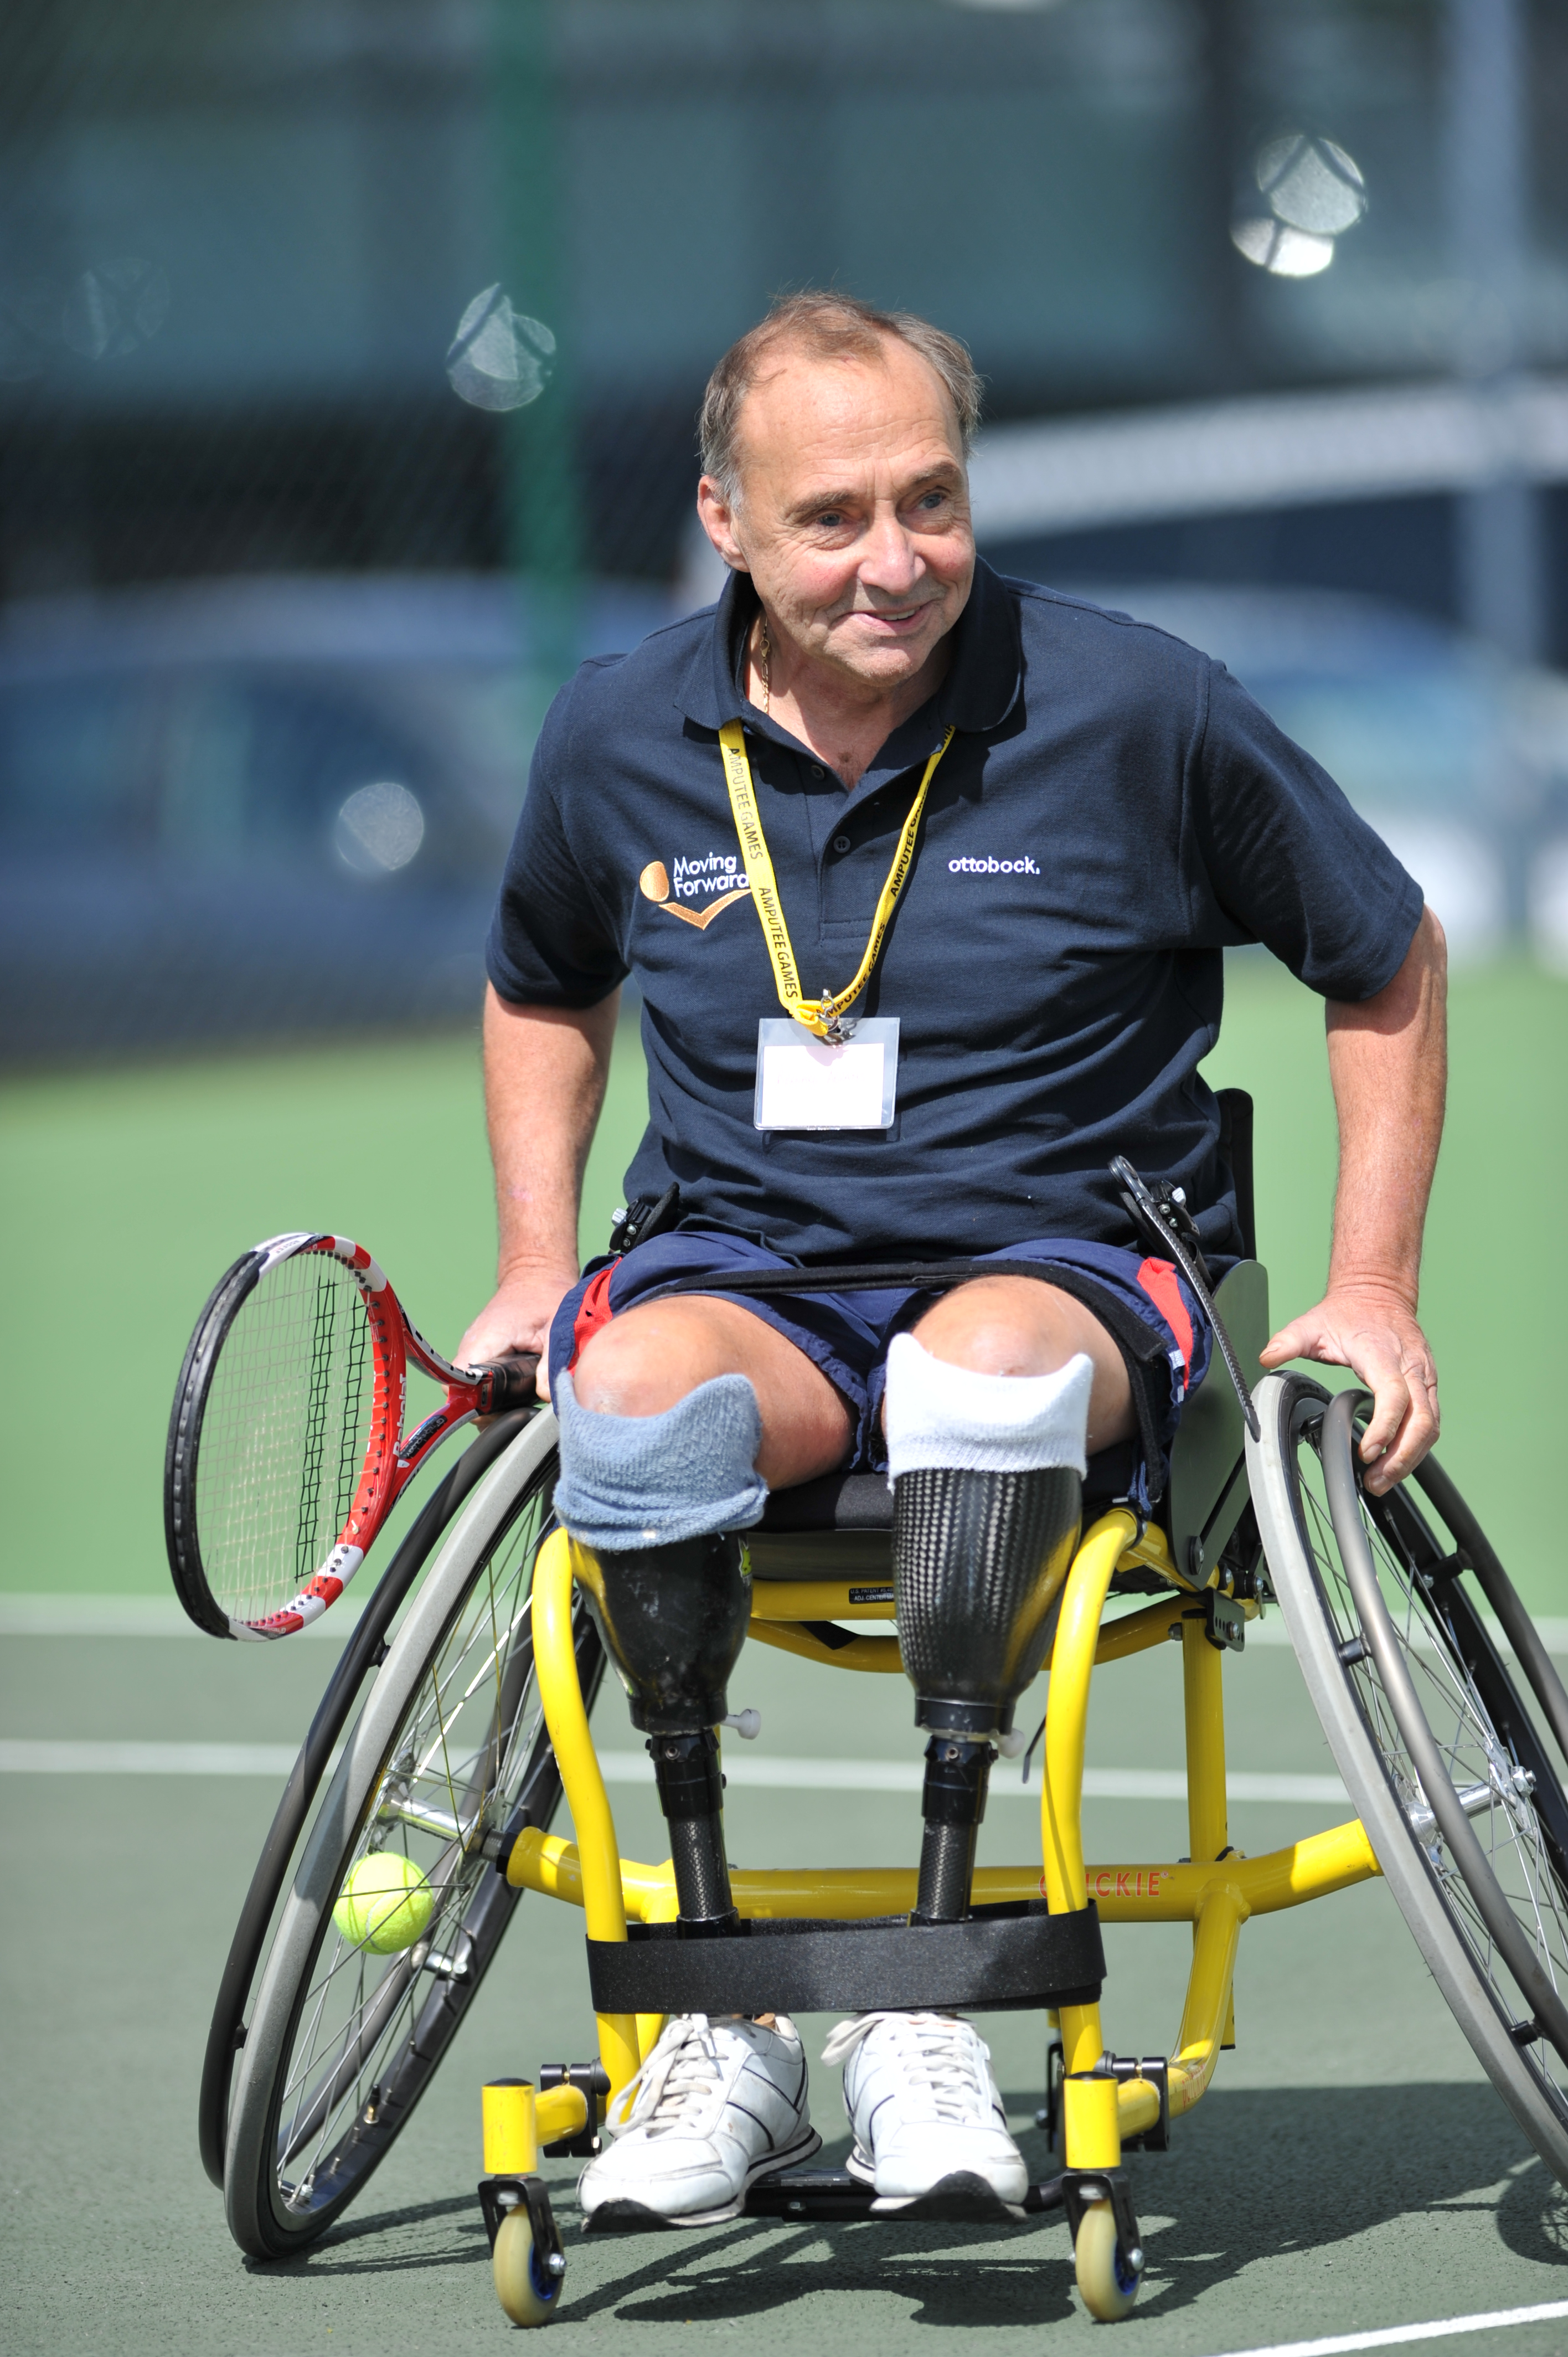 man double amputee in wheelchair playing tennis